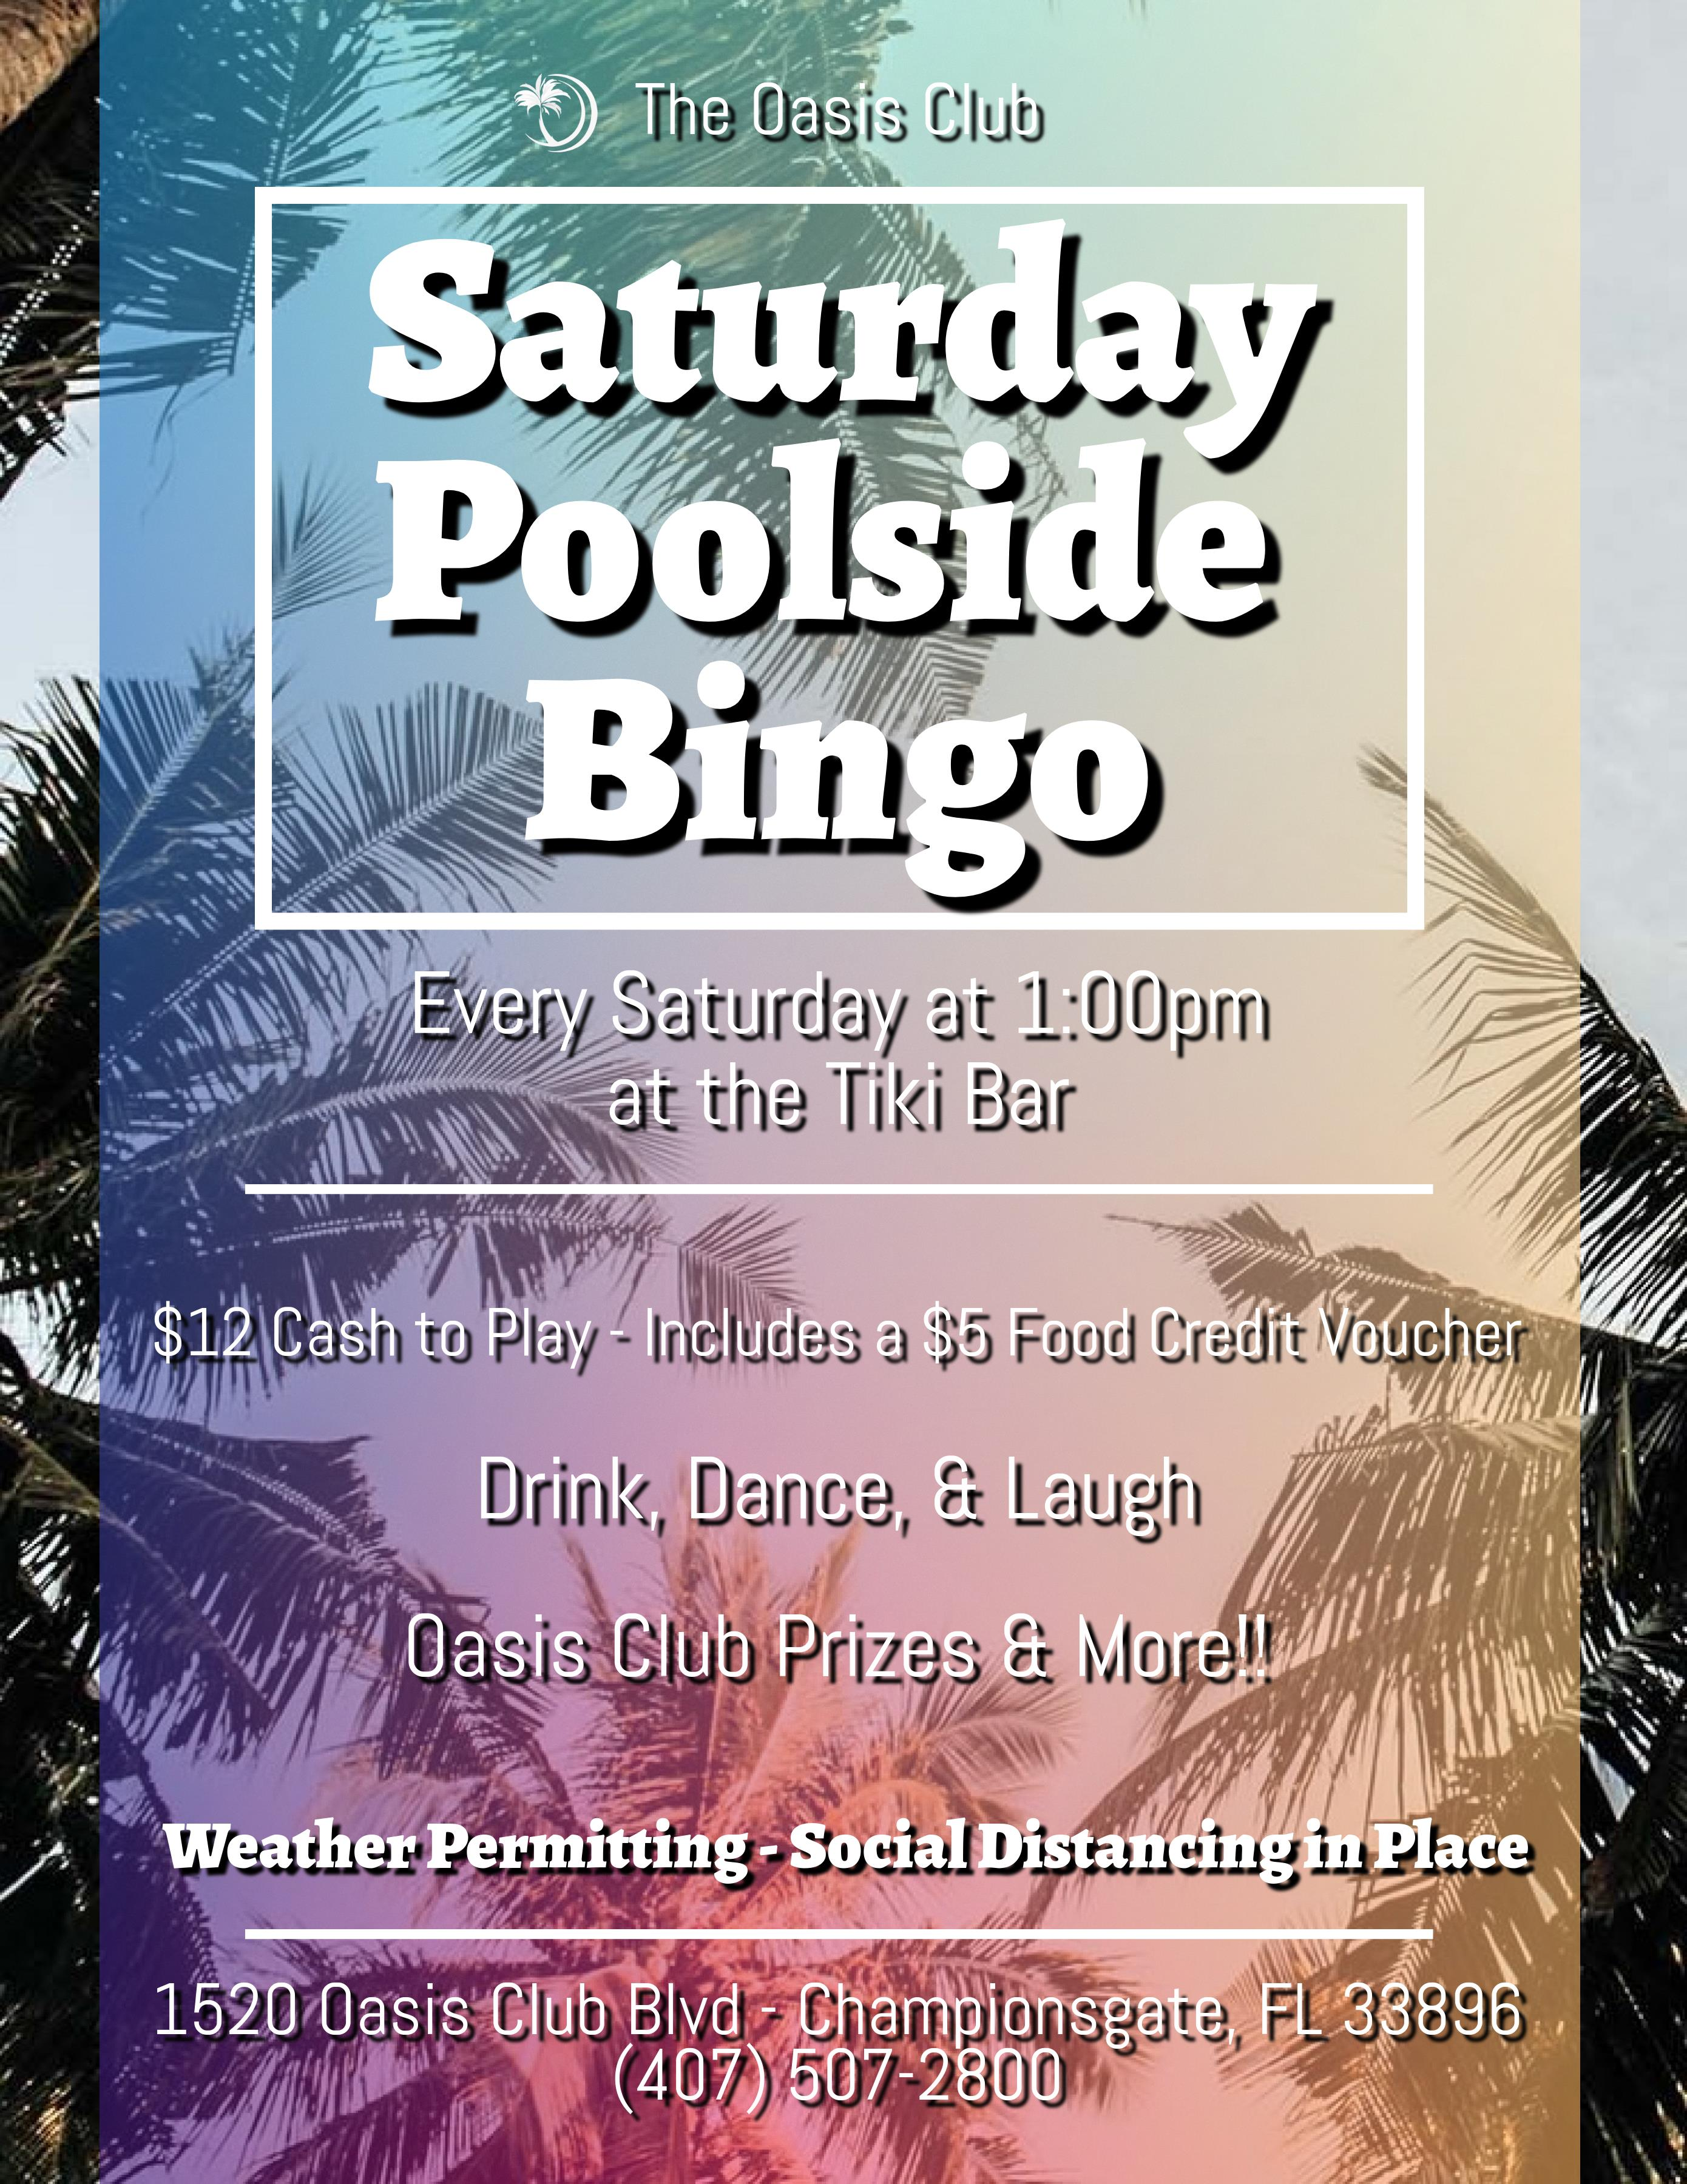 Brian's Poolside and Tiki Bar BINGO. Every Saturdat @ 2PM. Drink, Dance, & Laugh. Oasis Club Prizes, Drink Specials, $7 Dollars Cash Per Person. Lennar Orlando.